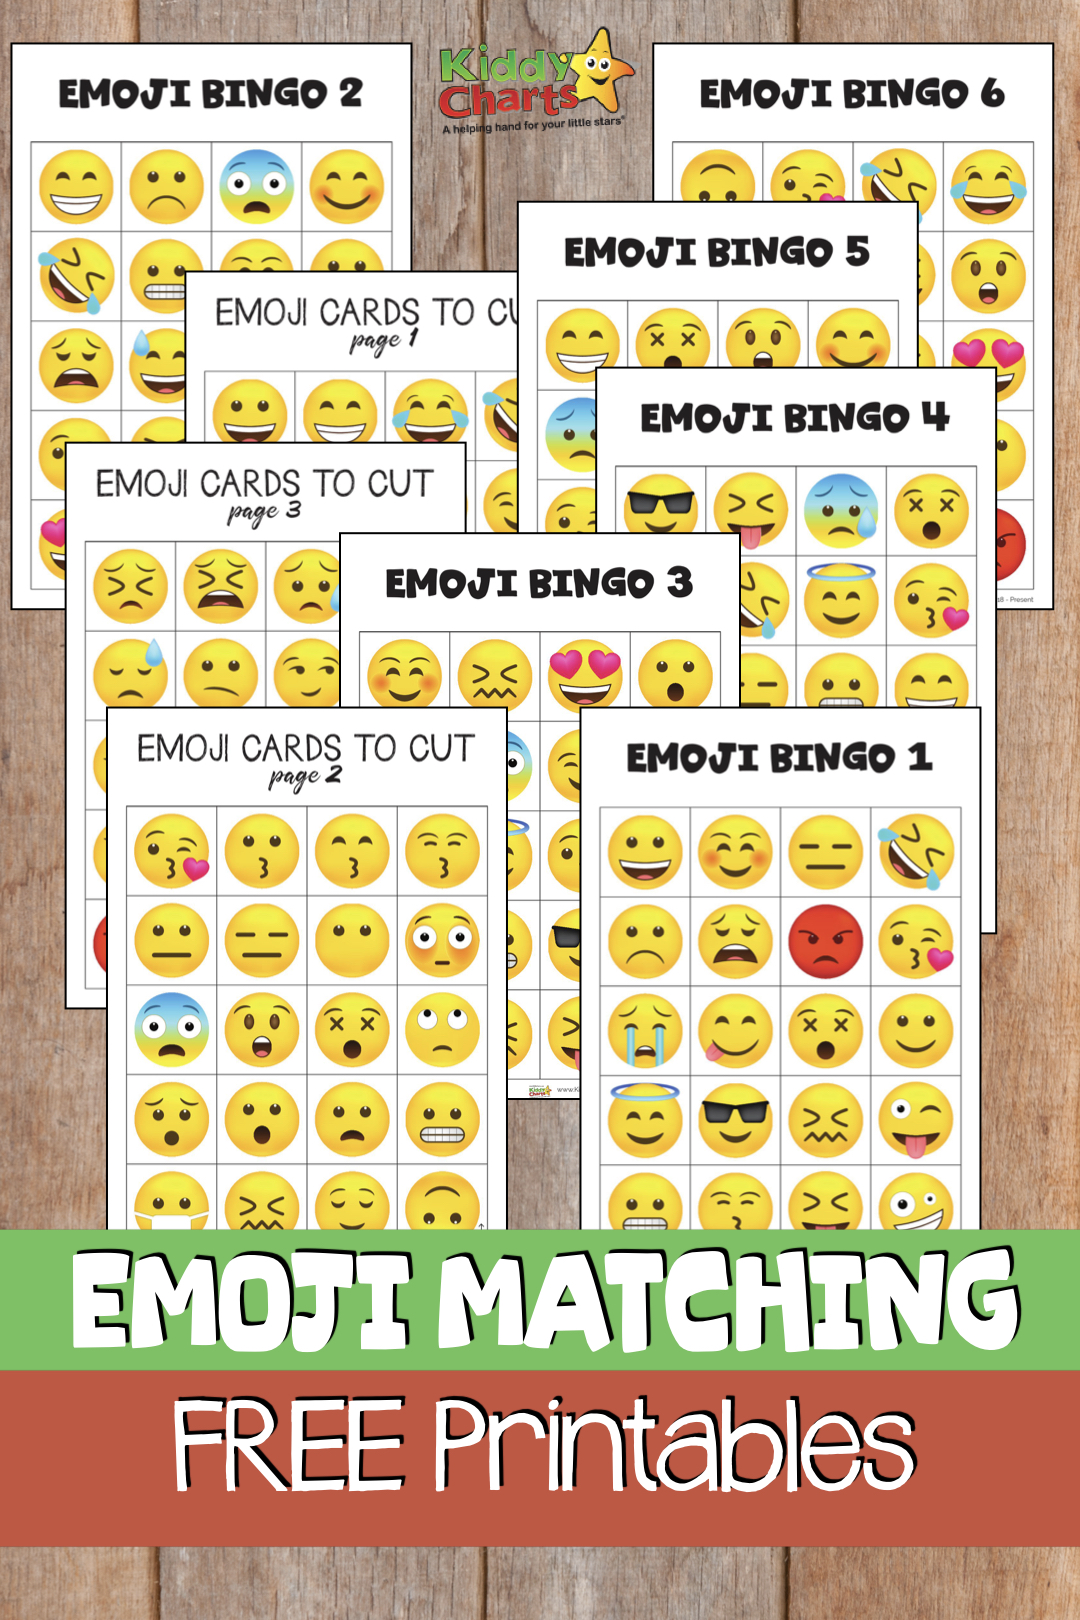 We have a fabulous game for you - Emoji Bingo. Play it with the kids today! #Emojis #Printables #Games #Bingo #Matching #FreeStuff